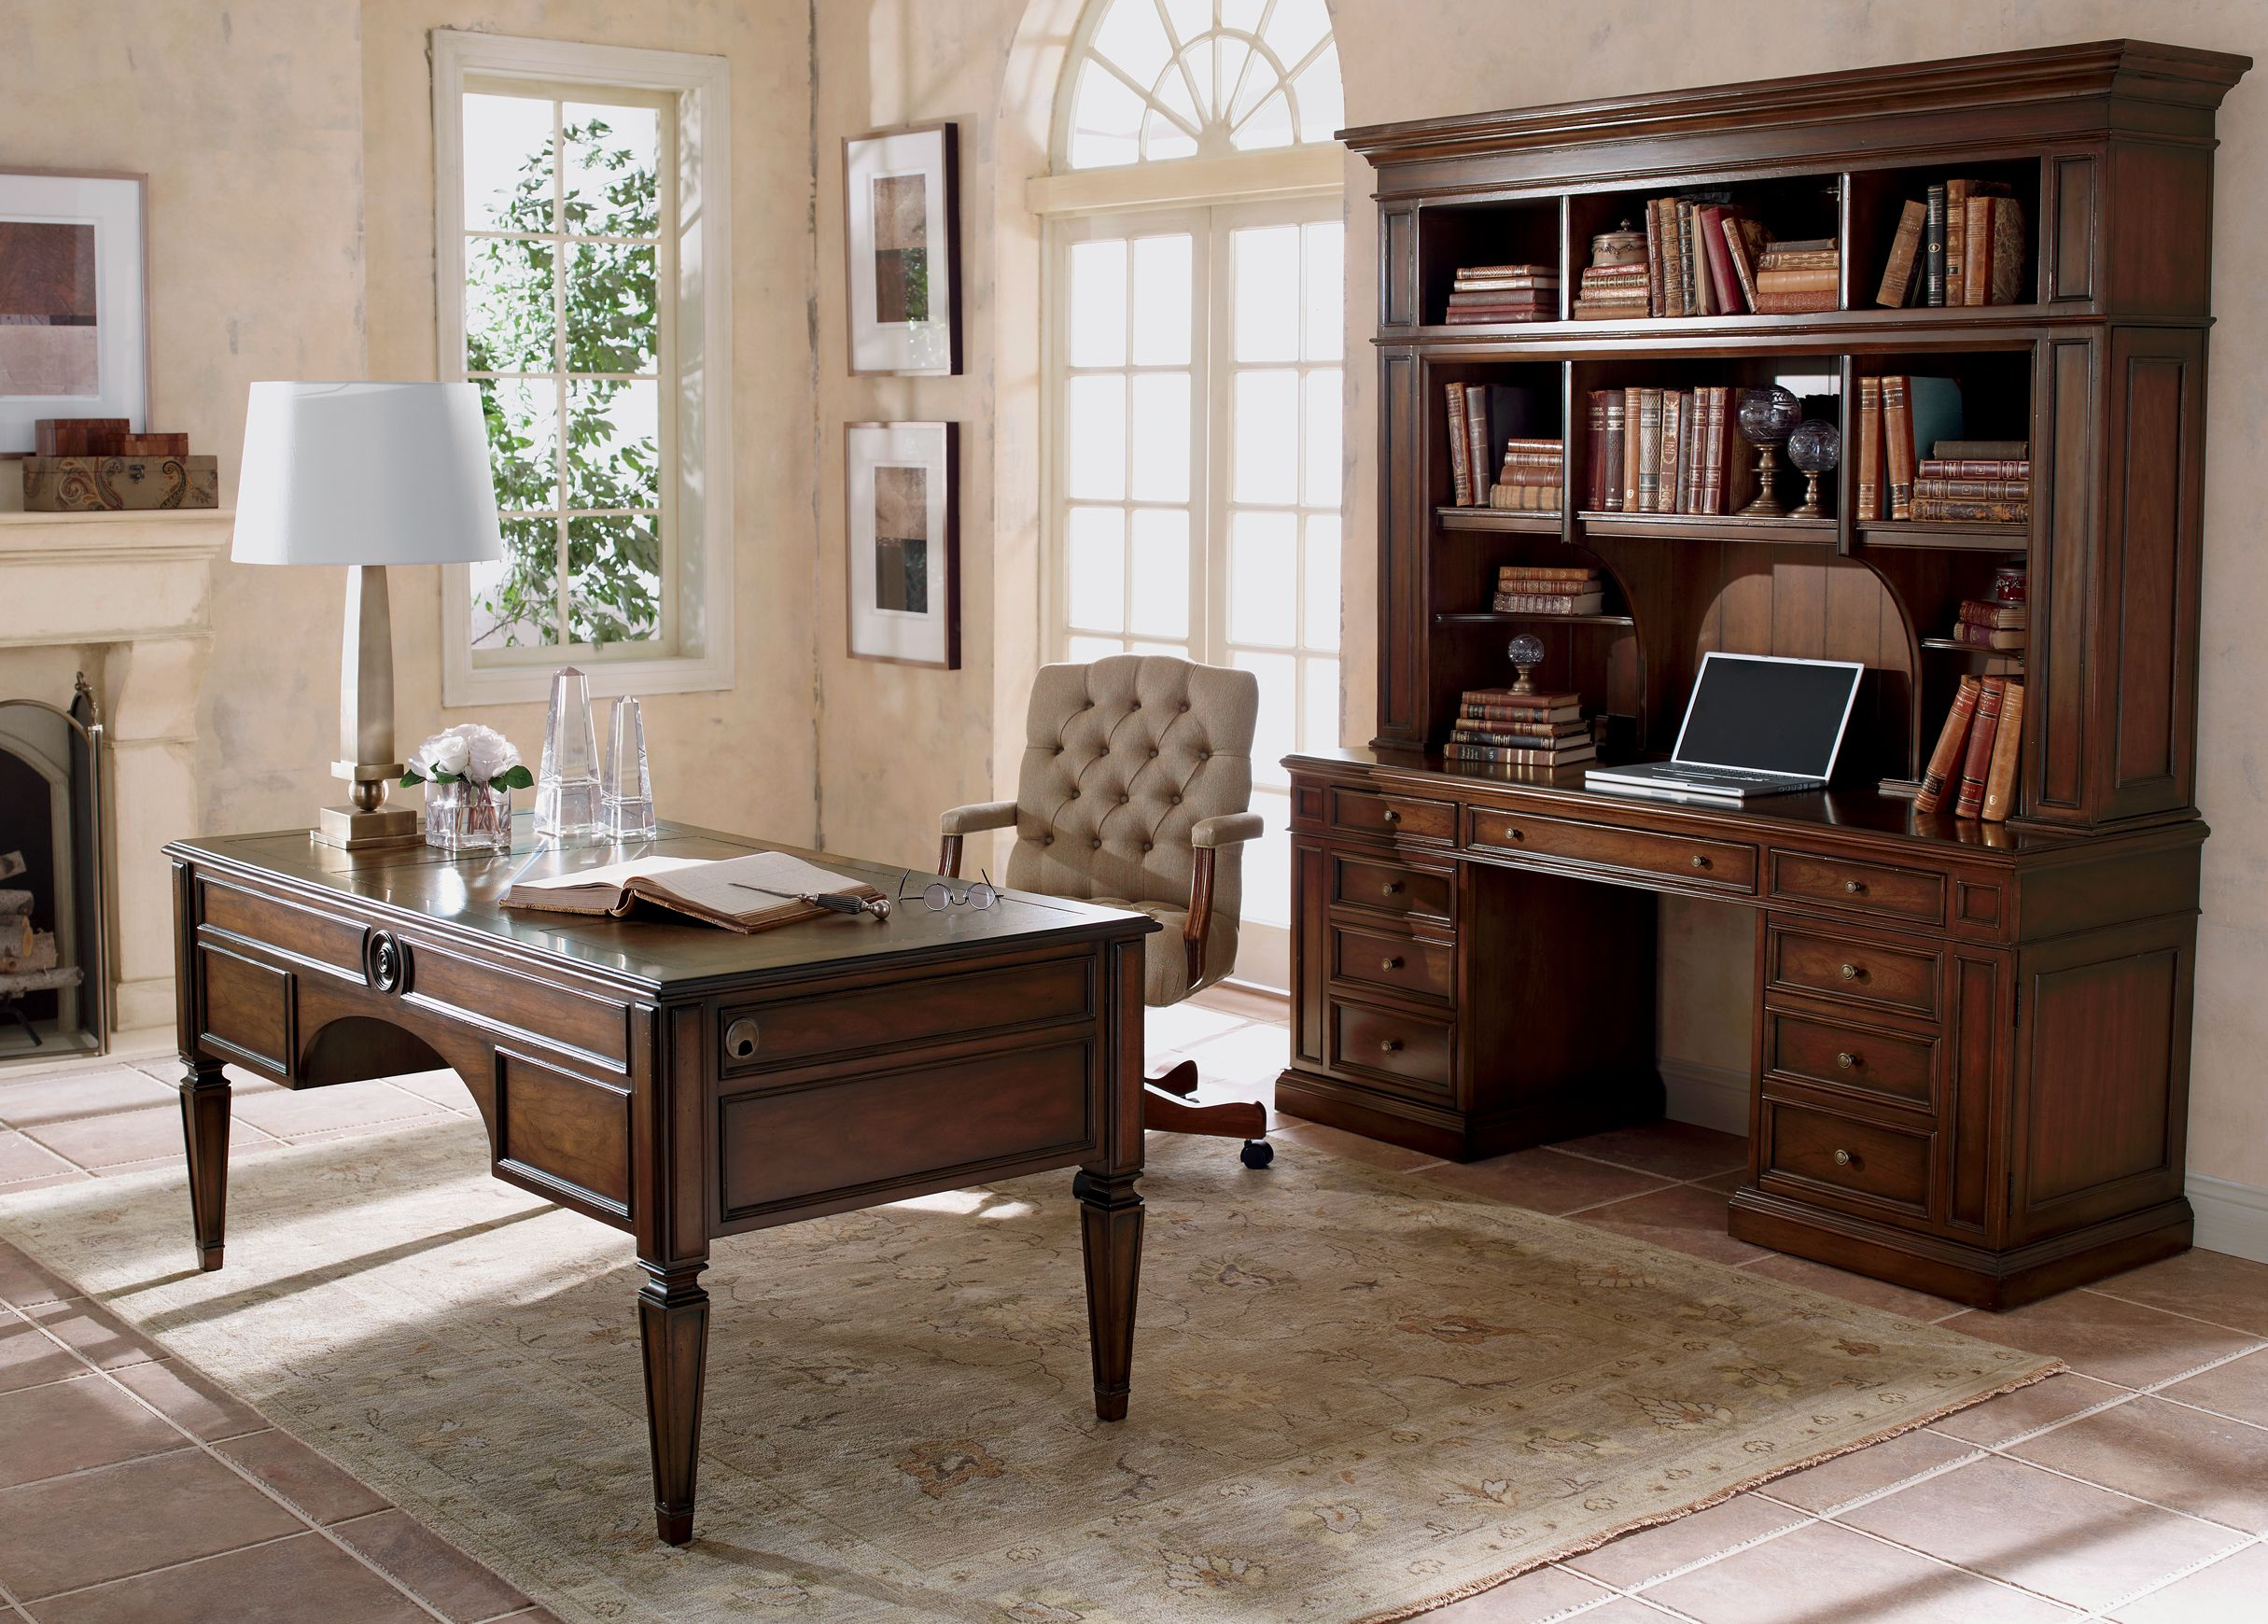 Buckley Home Office Getting Things Done Looking Great Doing It - Desks for home office ethan allen